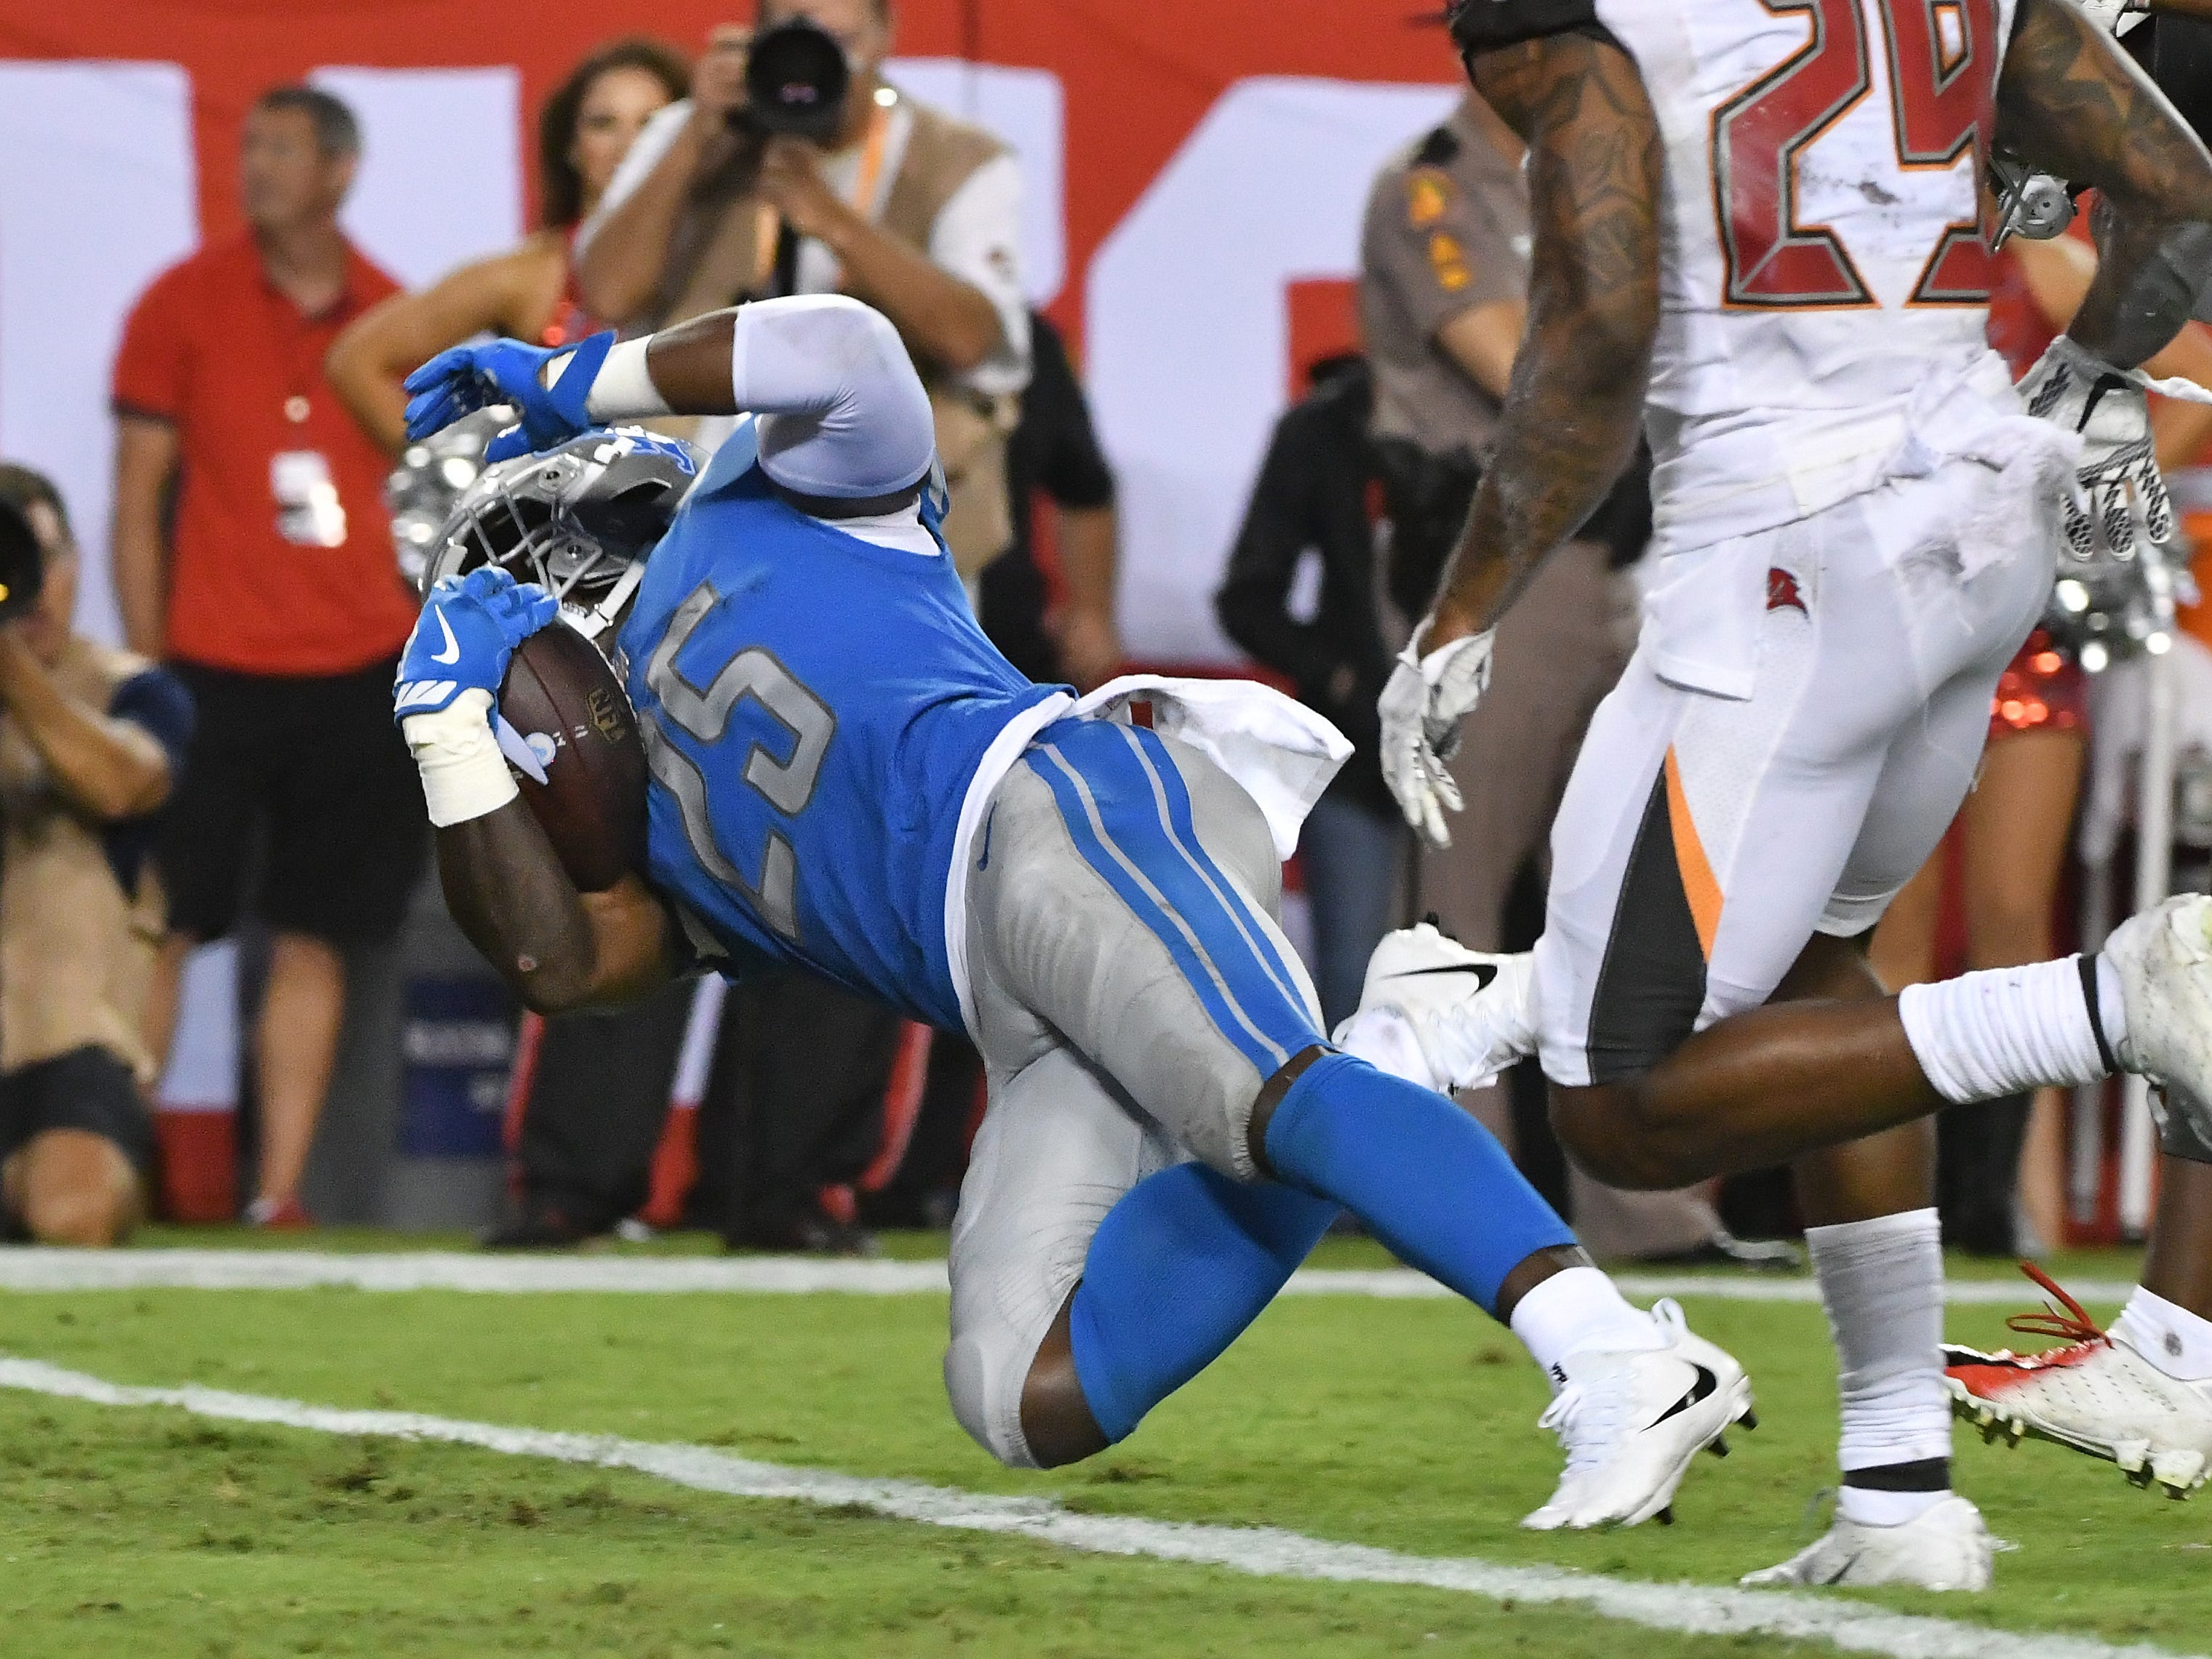 Lions' Theo Riddick goes into the end zone for a touchdown in the third quarter.